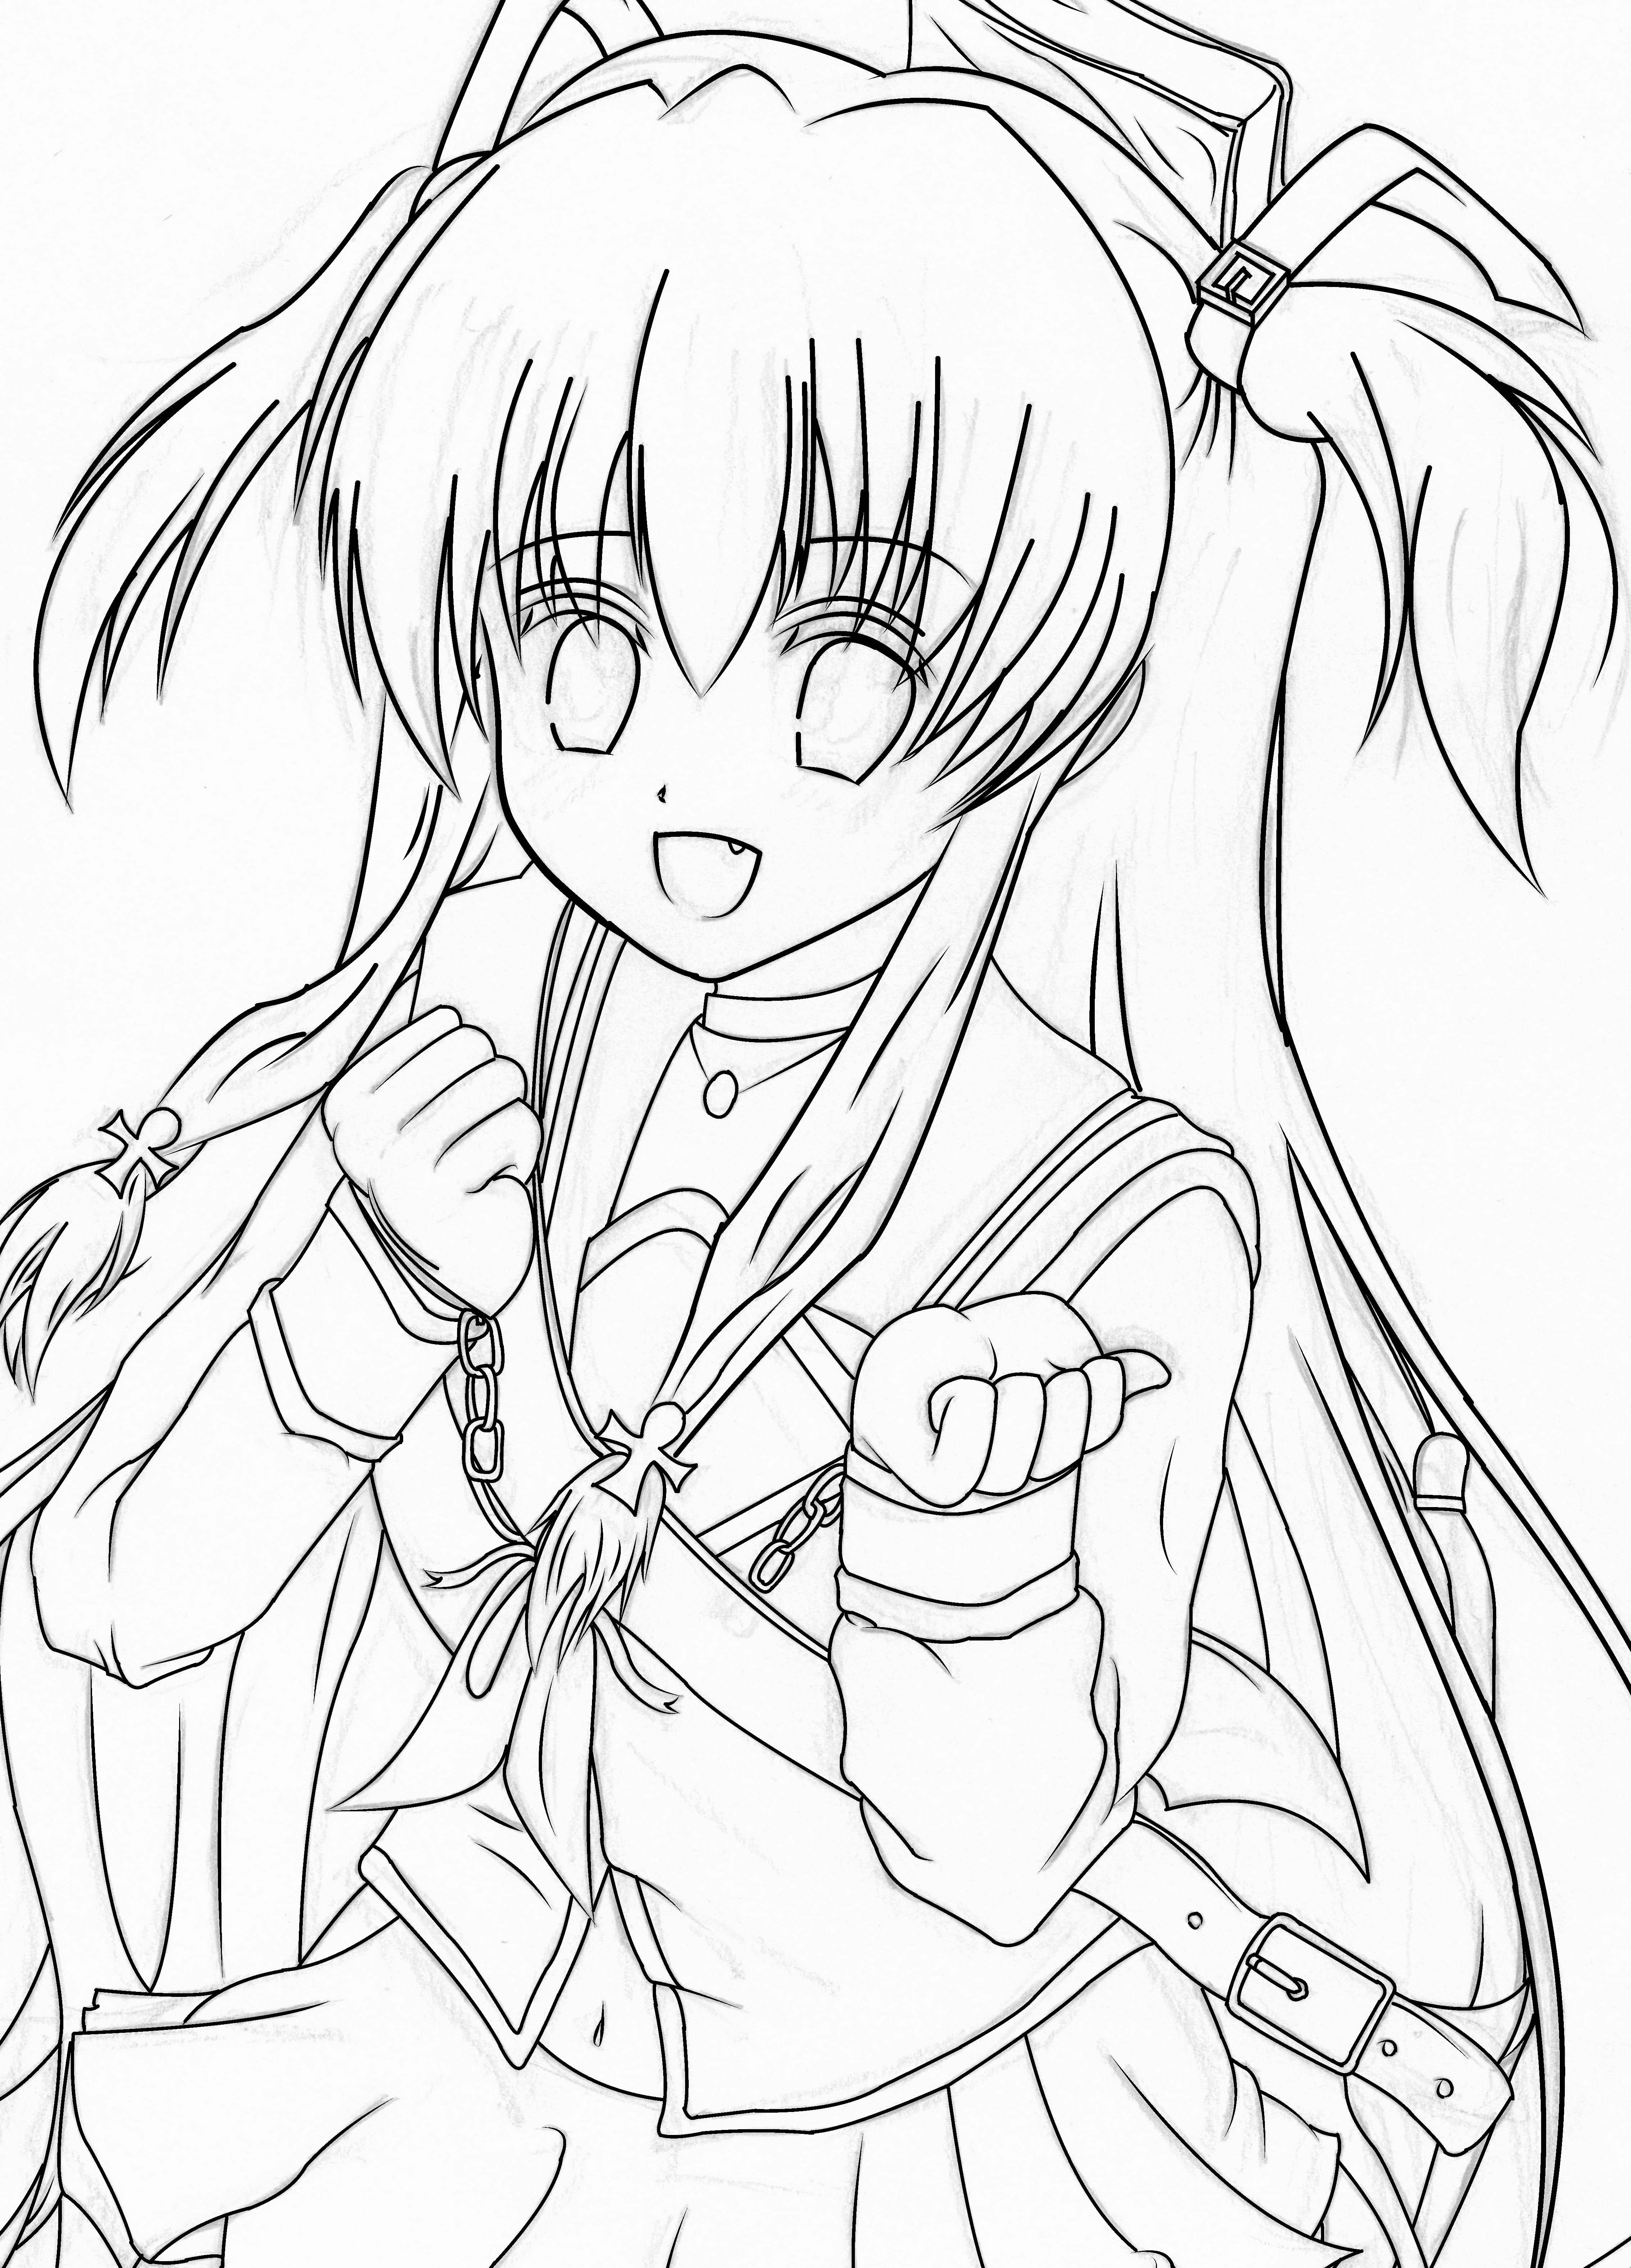 Line Art Anime : Yui angel beats digital line art by stesto on deviantart